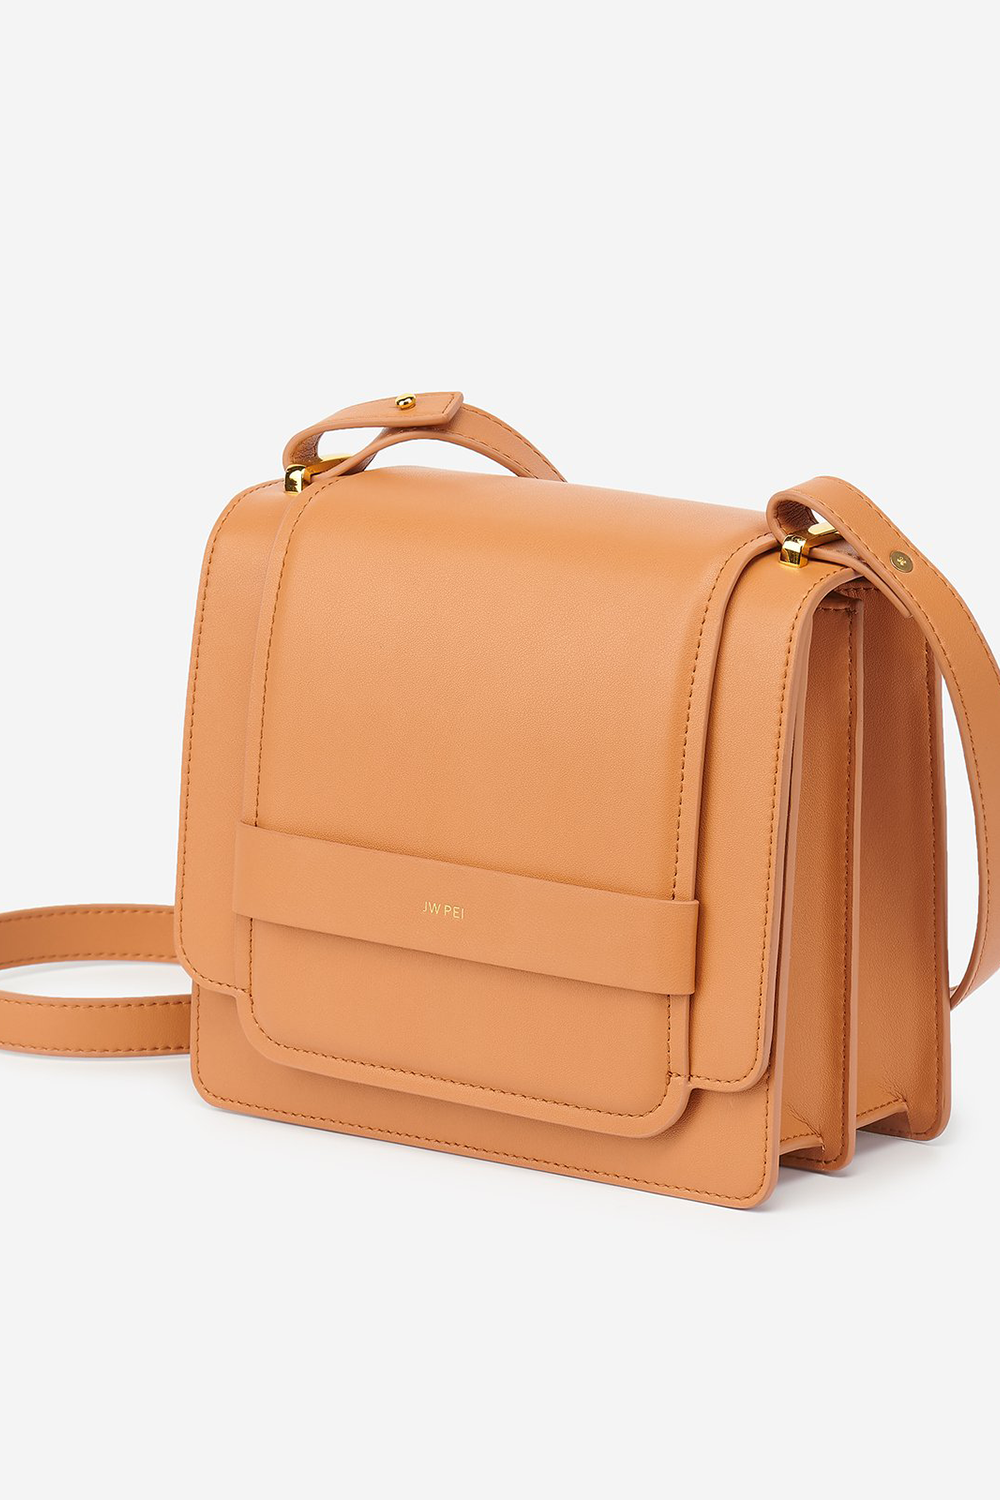 Fiona Bag in Tan